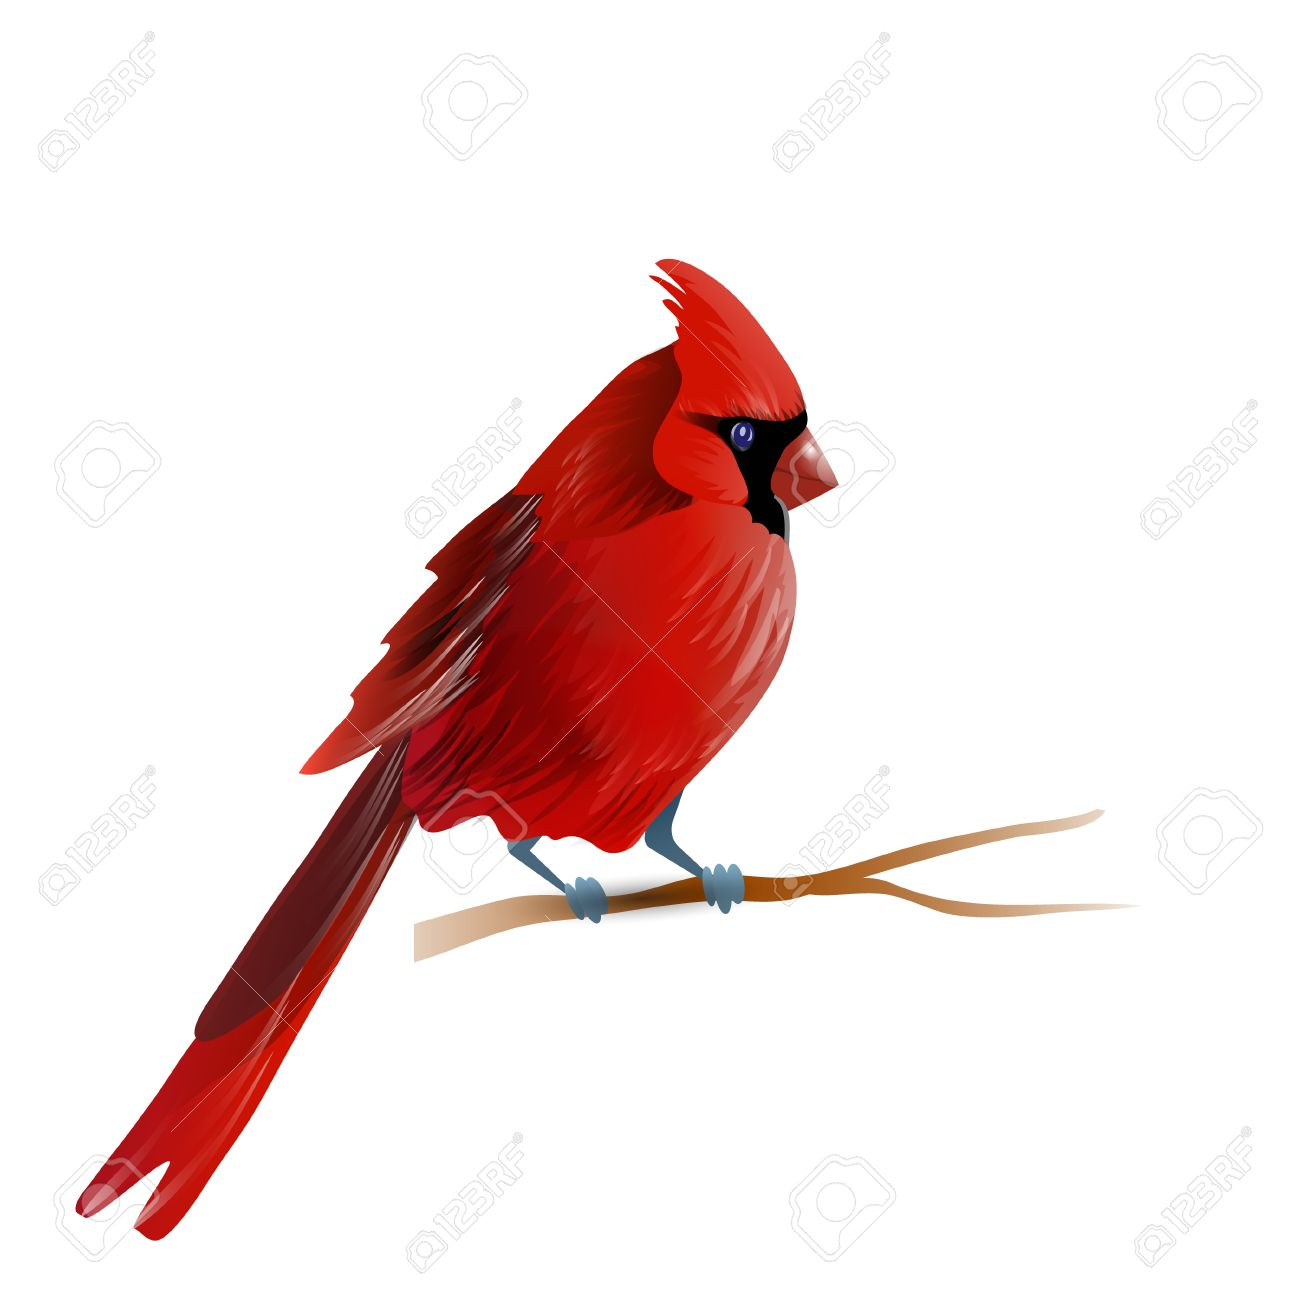 Vector Illustration Of Red Cardinal Bird Isolated On White Royalty